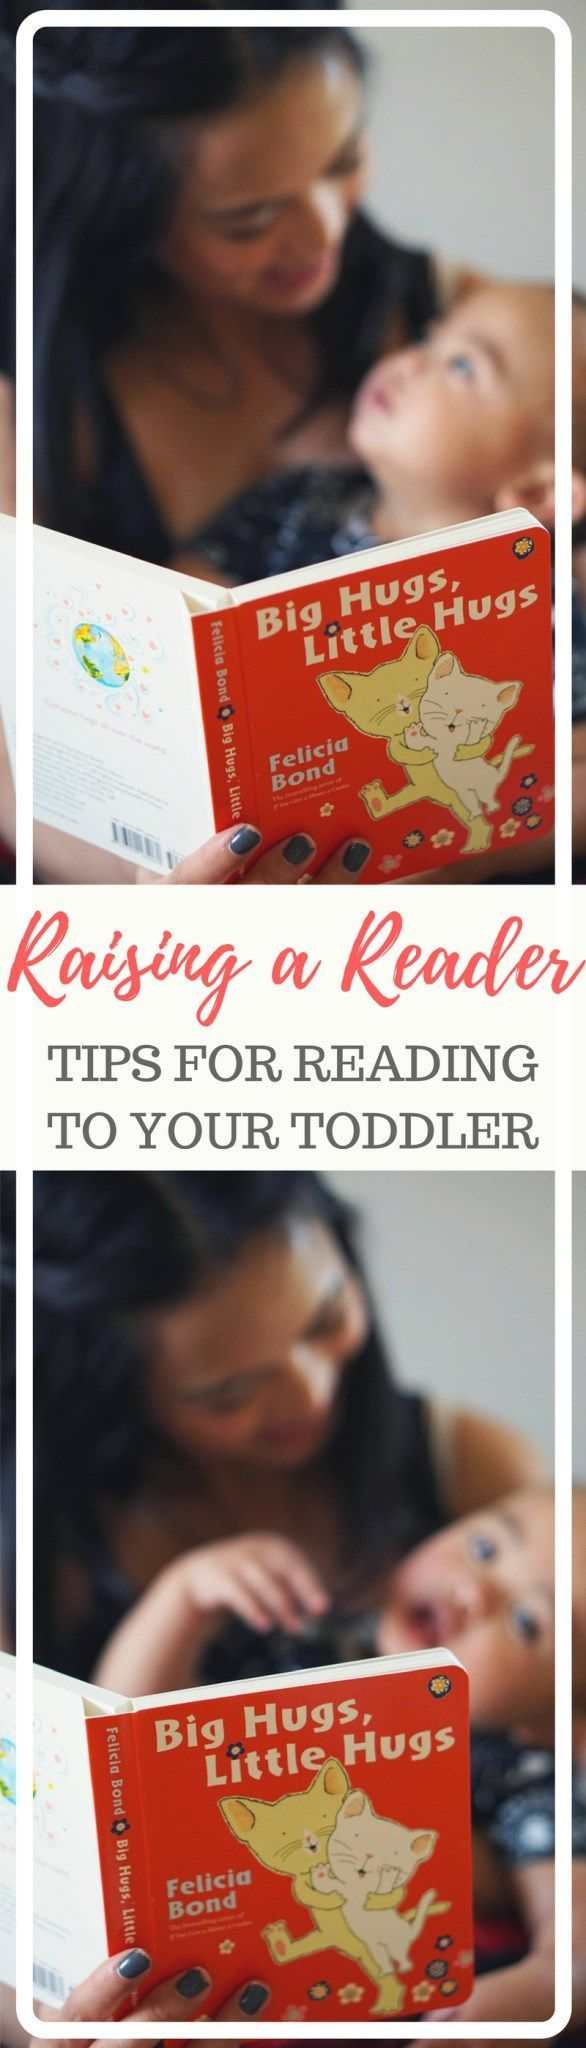 In honor of National Reading month, let's talk about raising a Reader with Bookroo and encouraging childhood literacy.